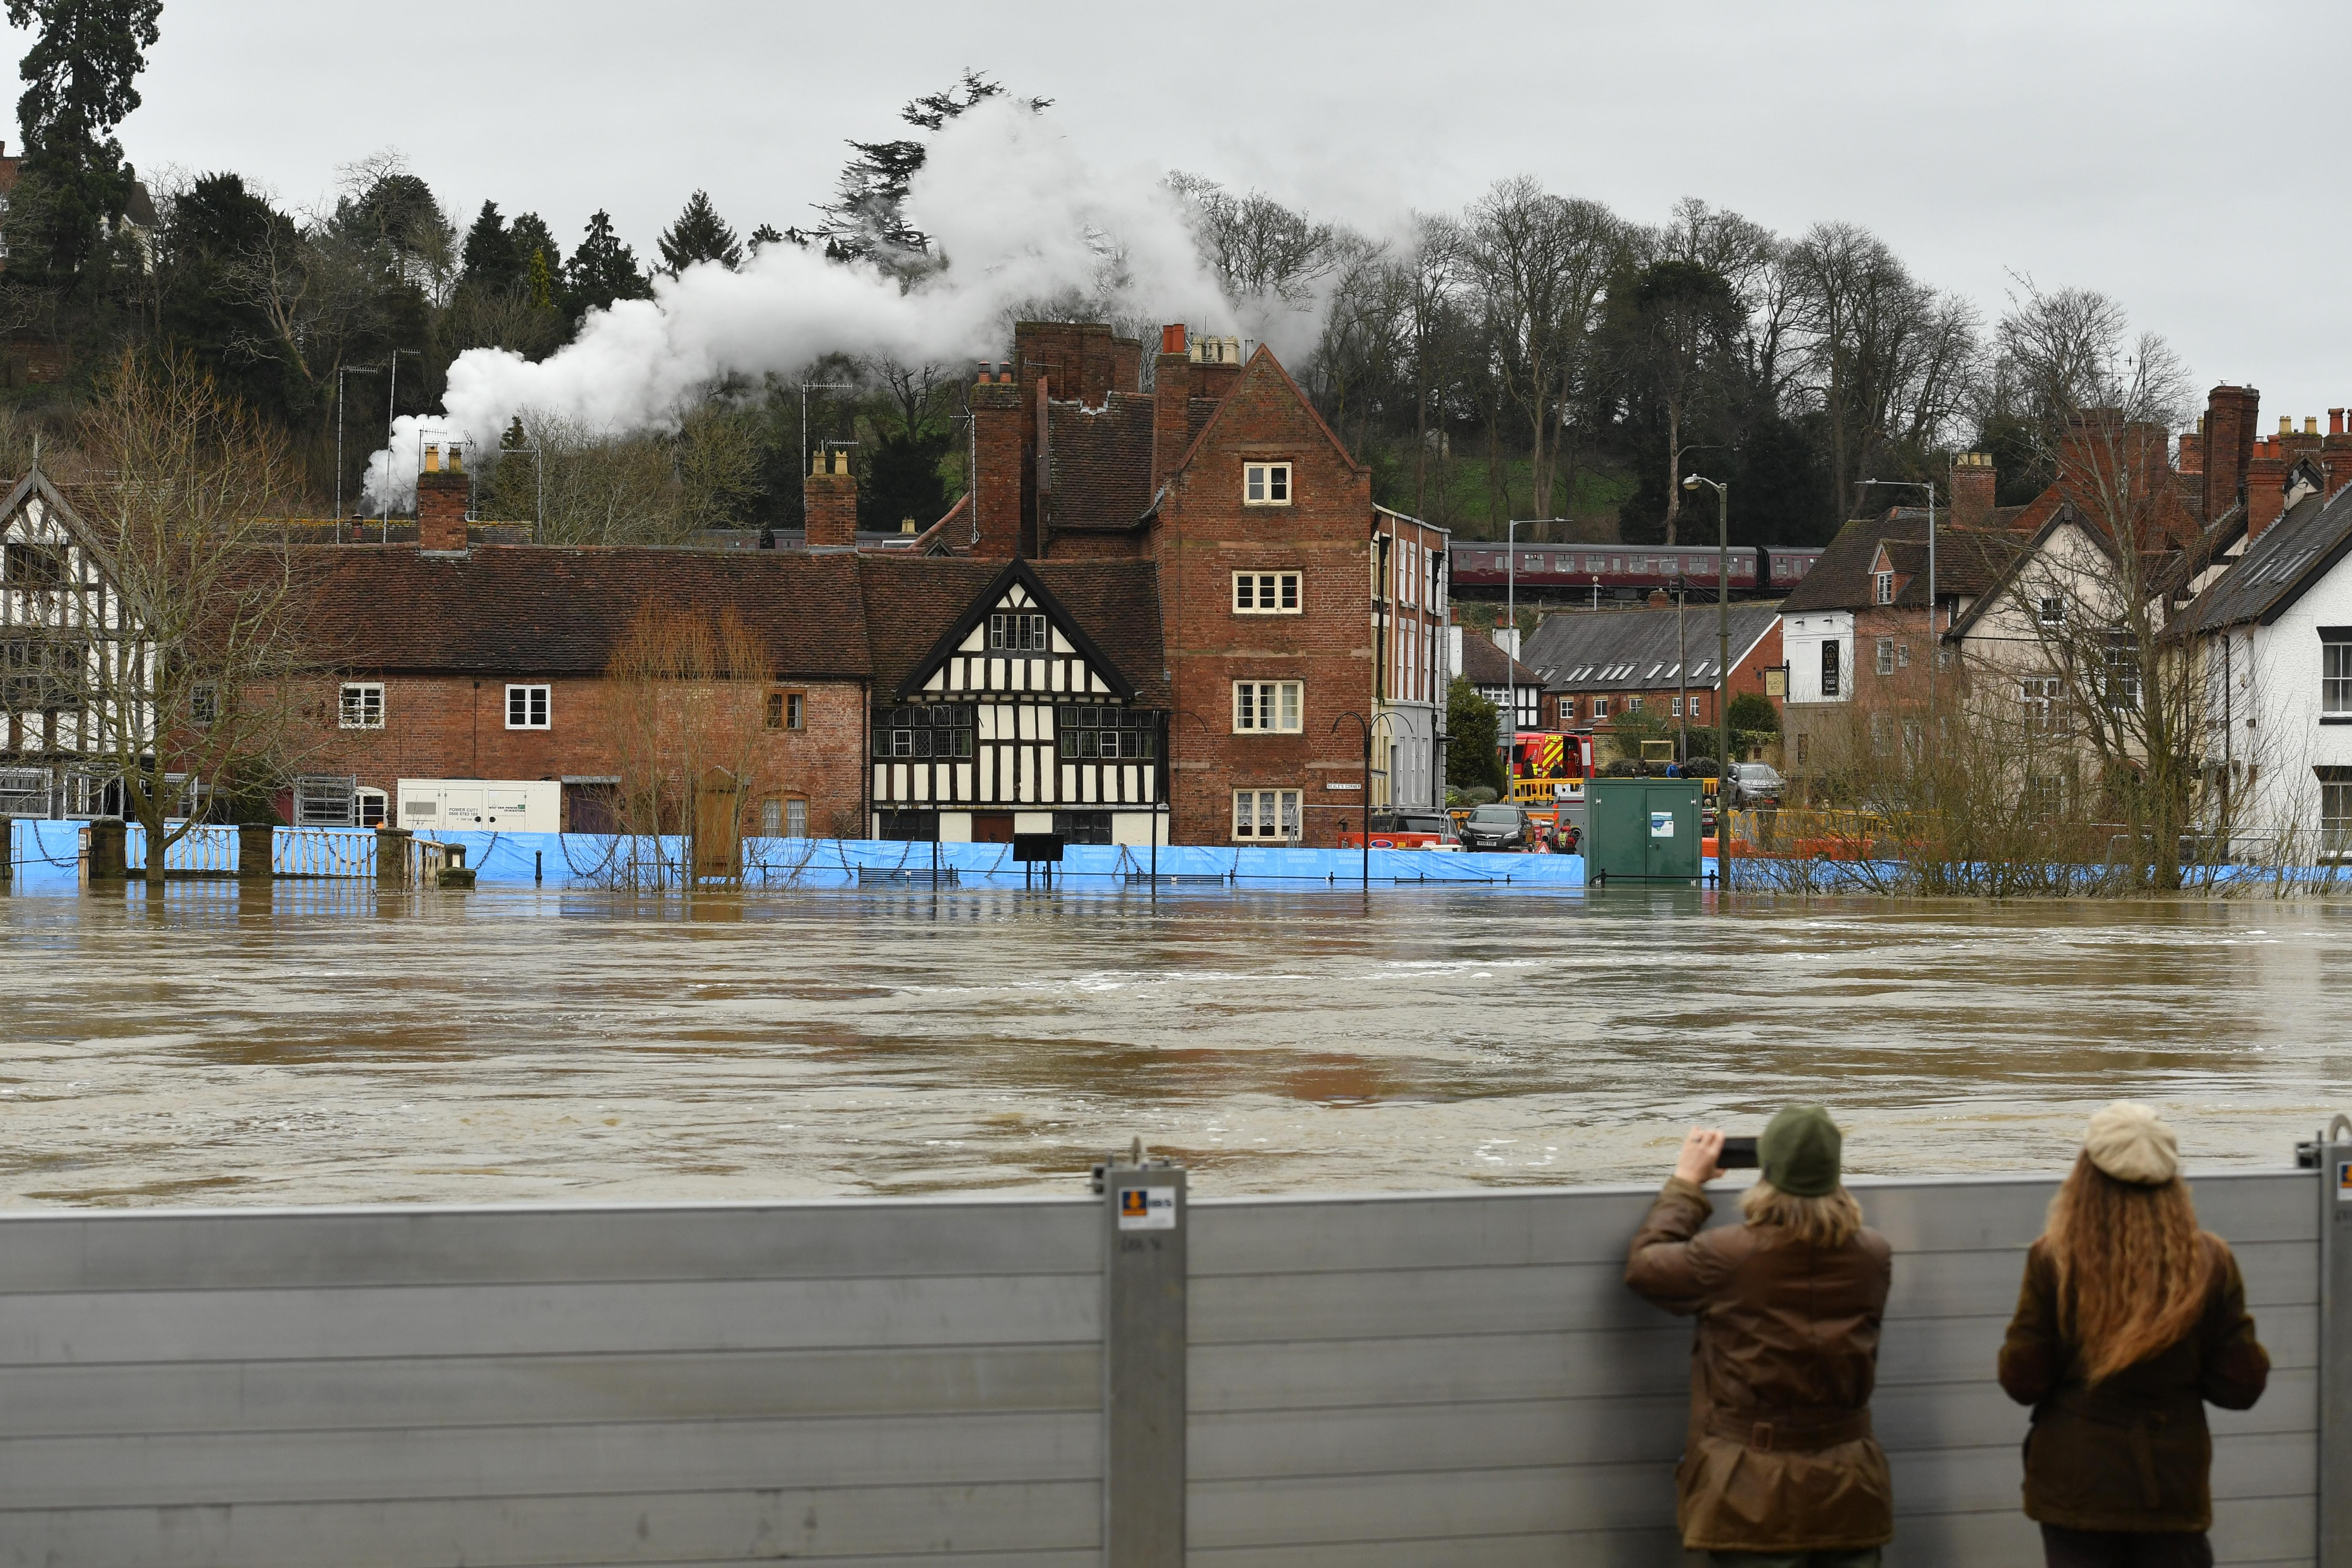 A steam train on the Severn Valley Railway passes the town of Bewdley, Worcestershire, in the aftermath of Storm Dennis.